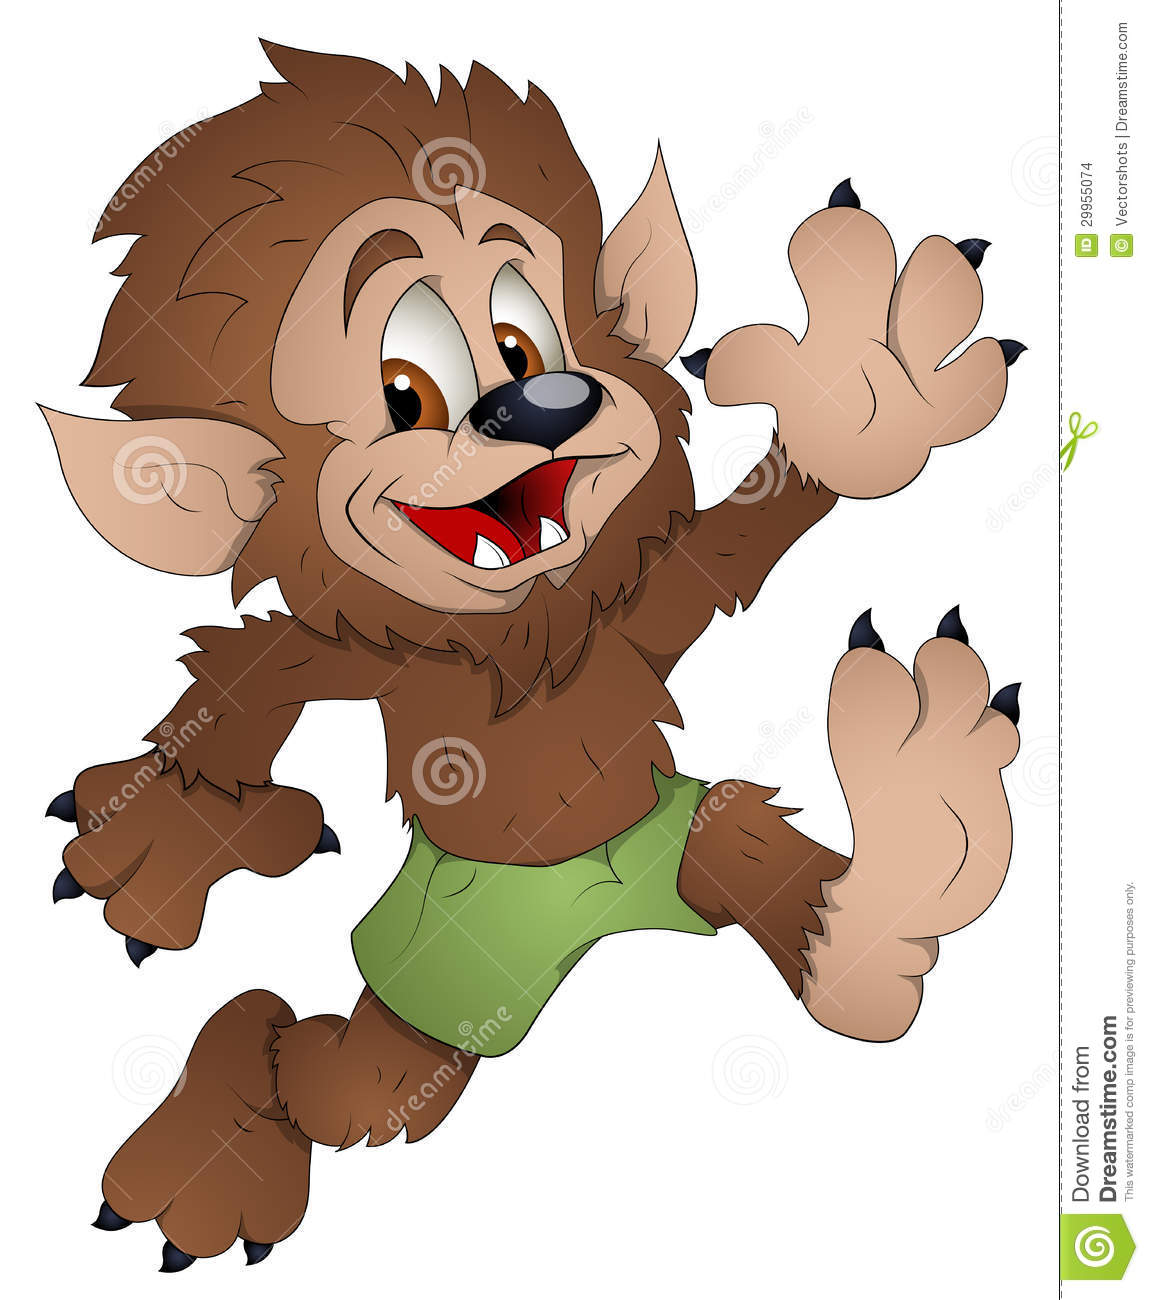 Cute Werewolf - Cartoon Character - Vector Illustration Stock Images ...